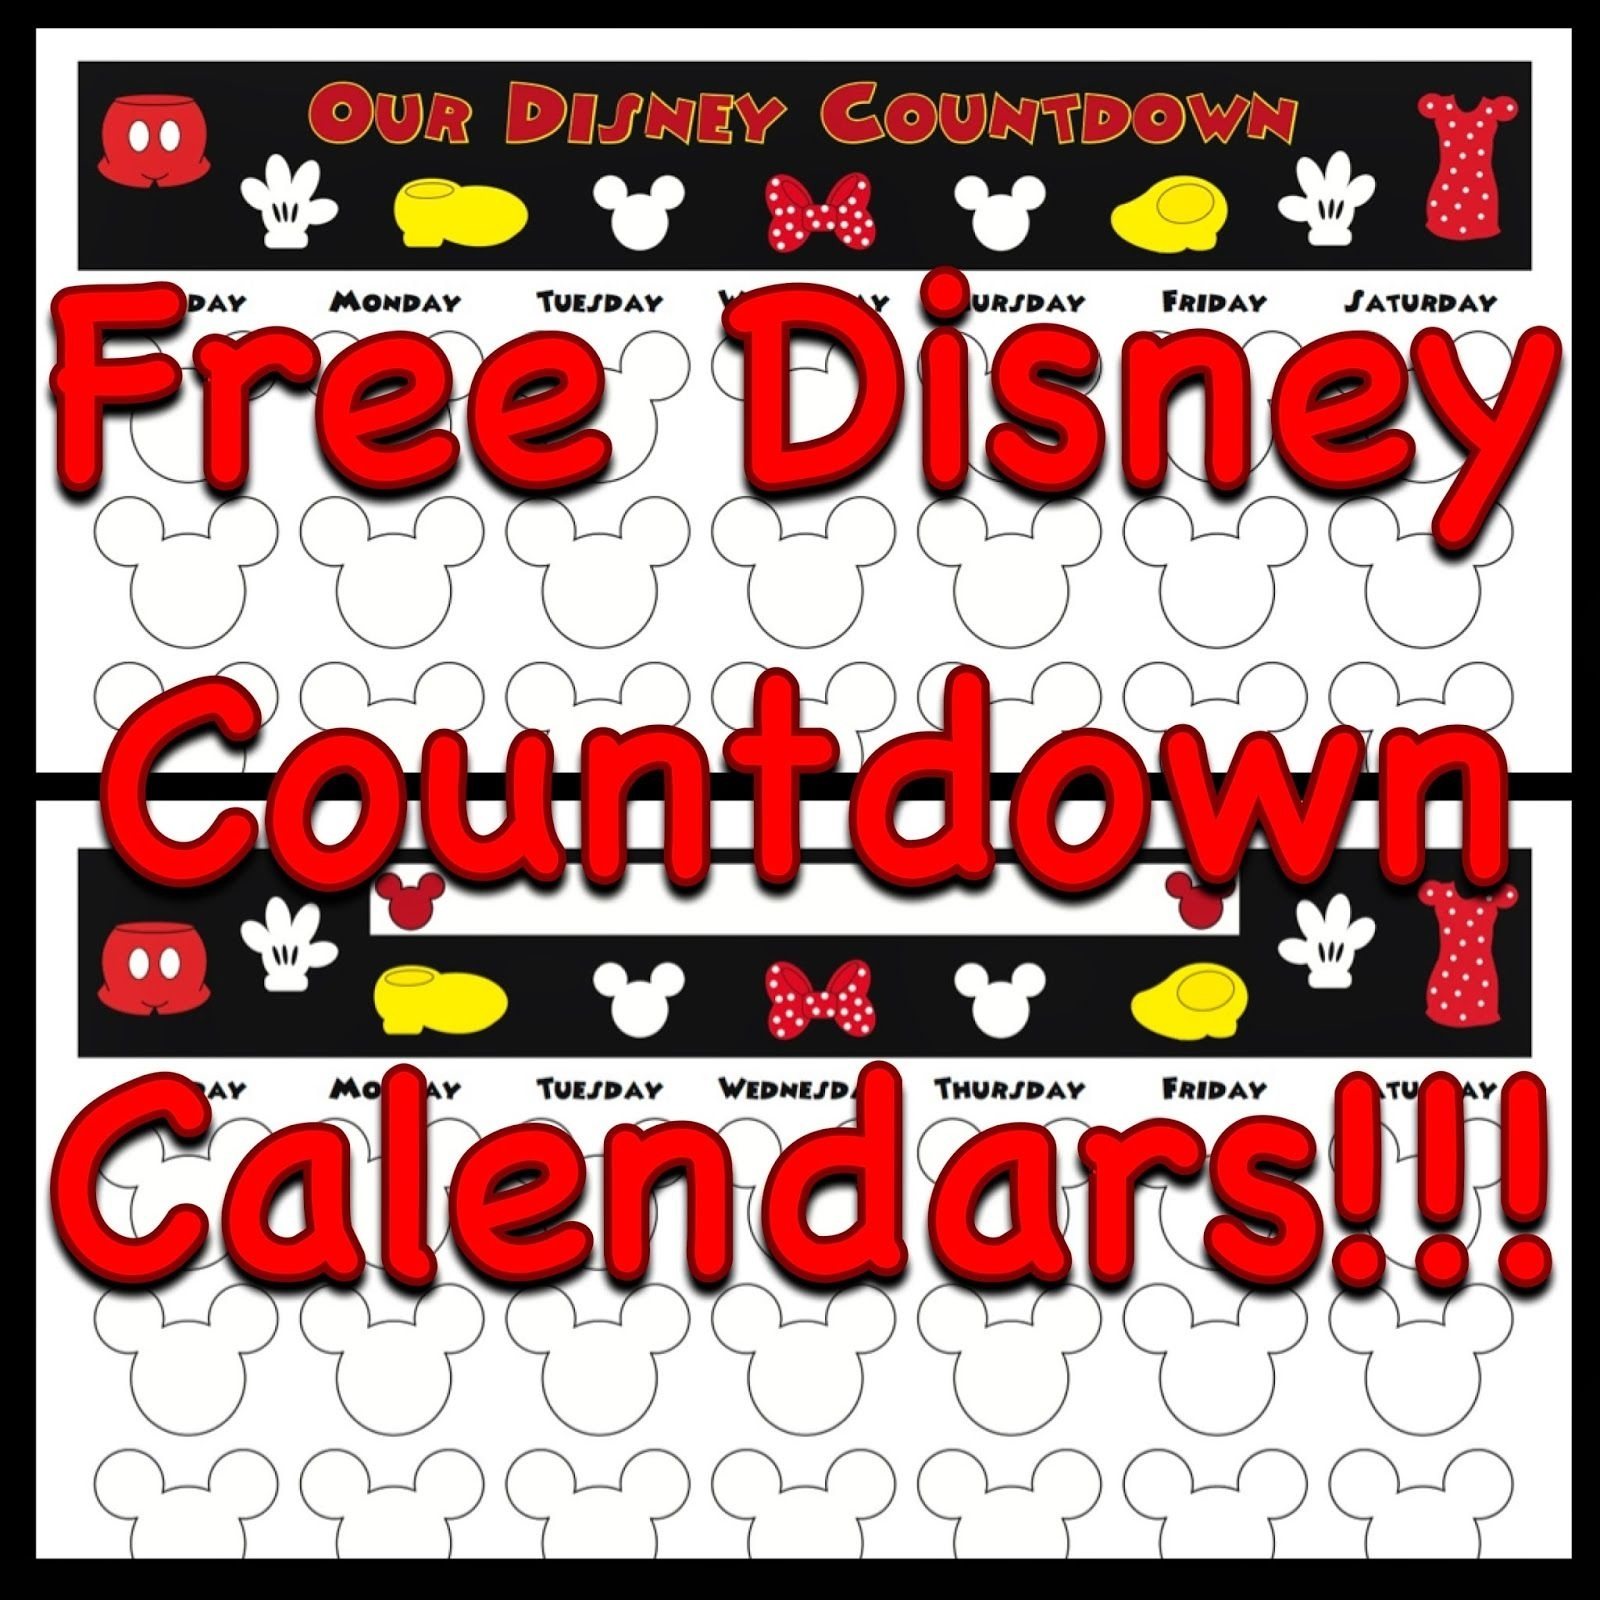 Free, Printable Countdown Calendars To Use For Your Next Disney Trip intended for Free Printable Vacation Countdown Calendar